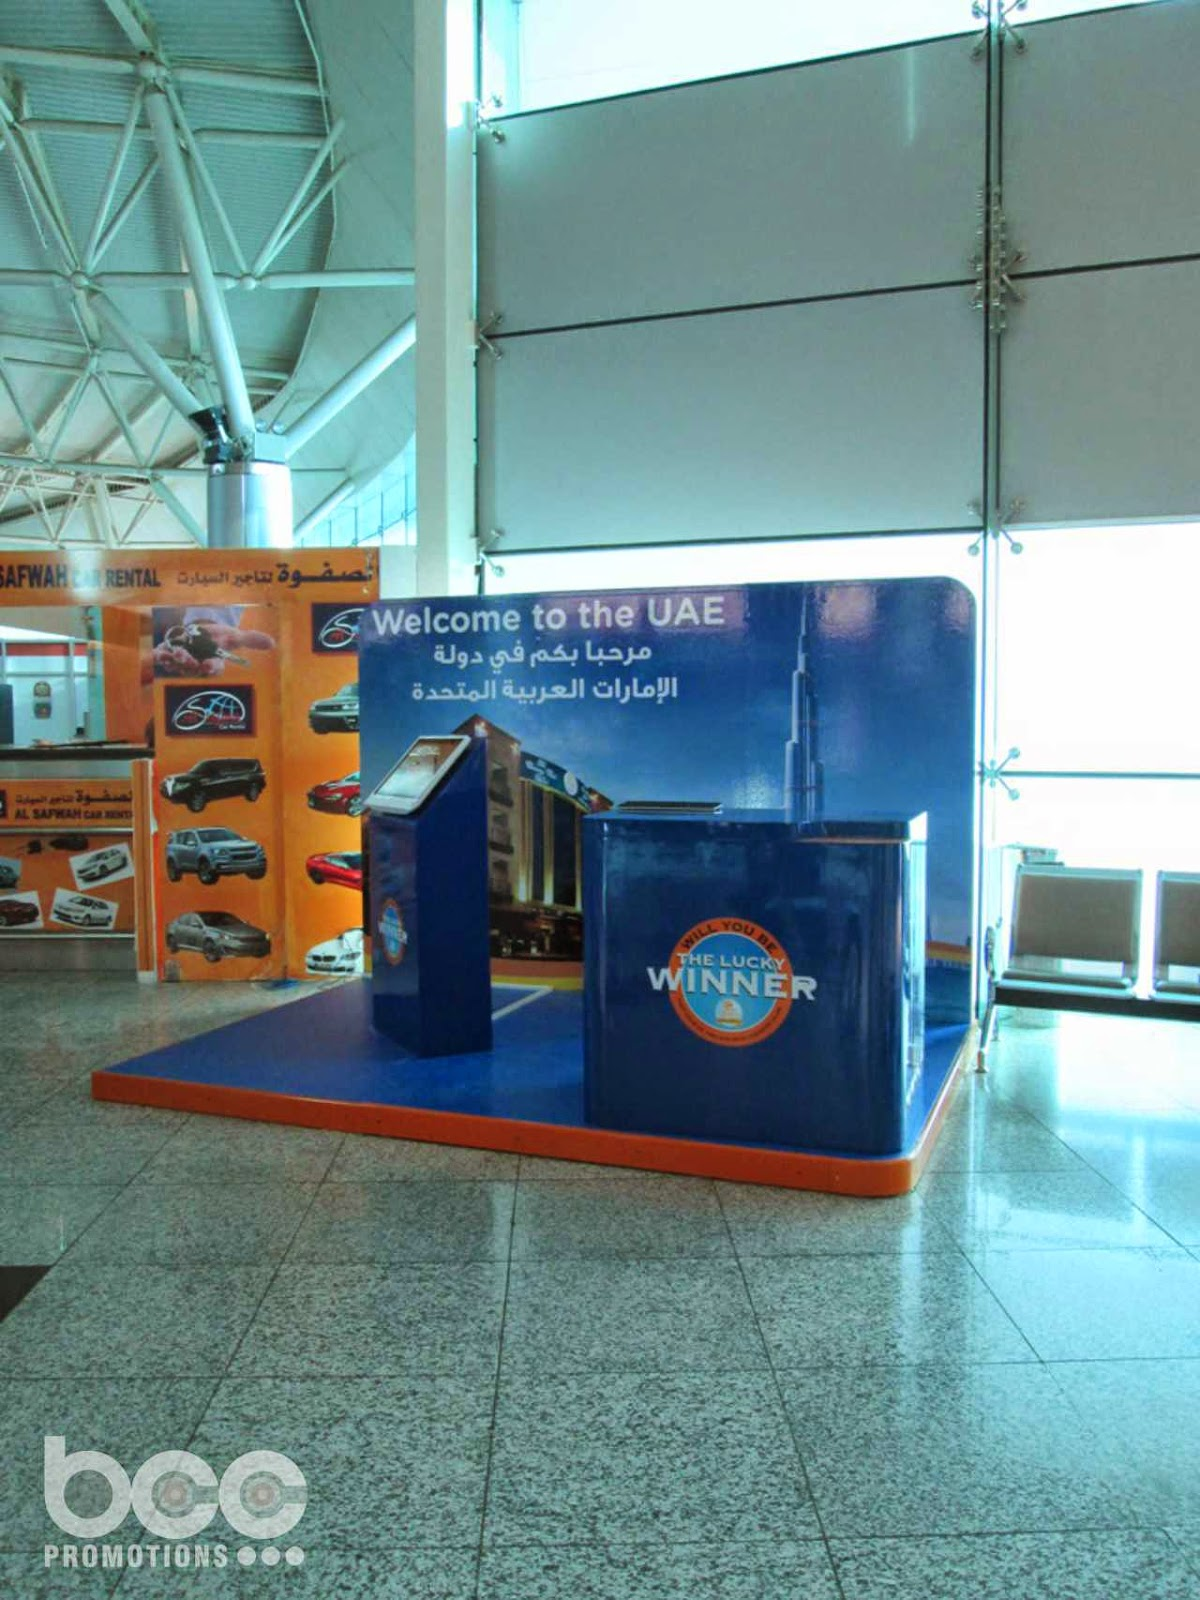 Exhibition Stall Rental In Chennai : Stall design & execution by brand care communications bcc marcom